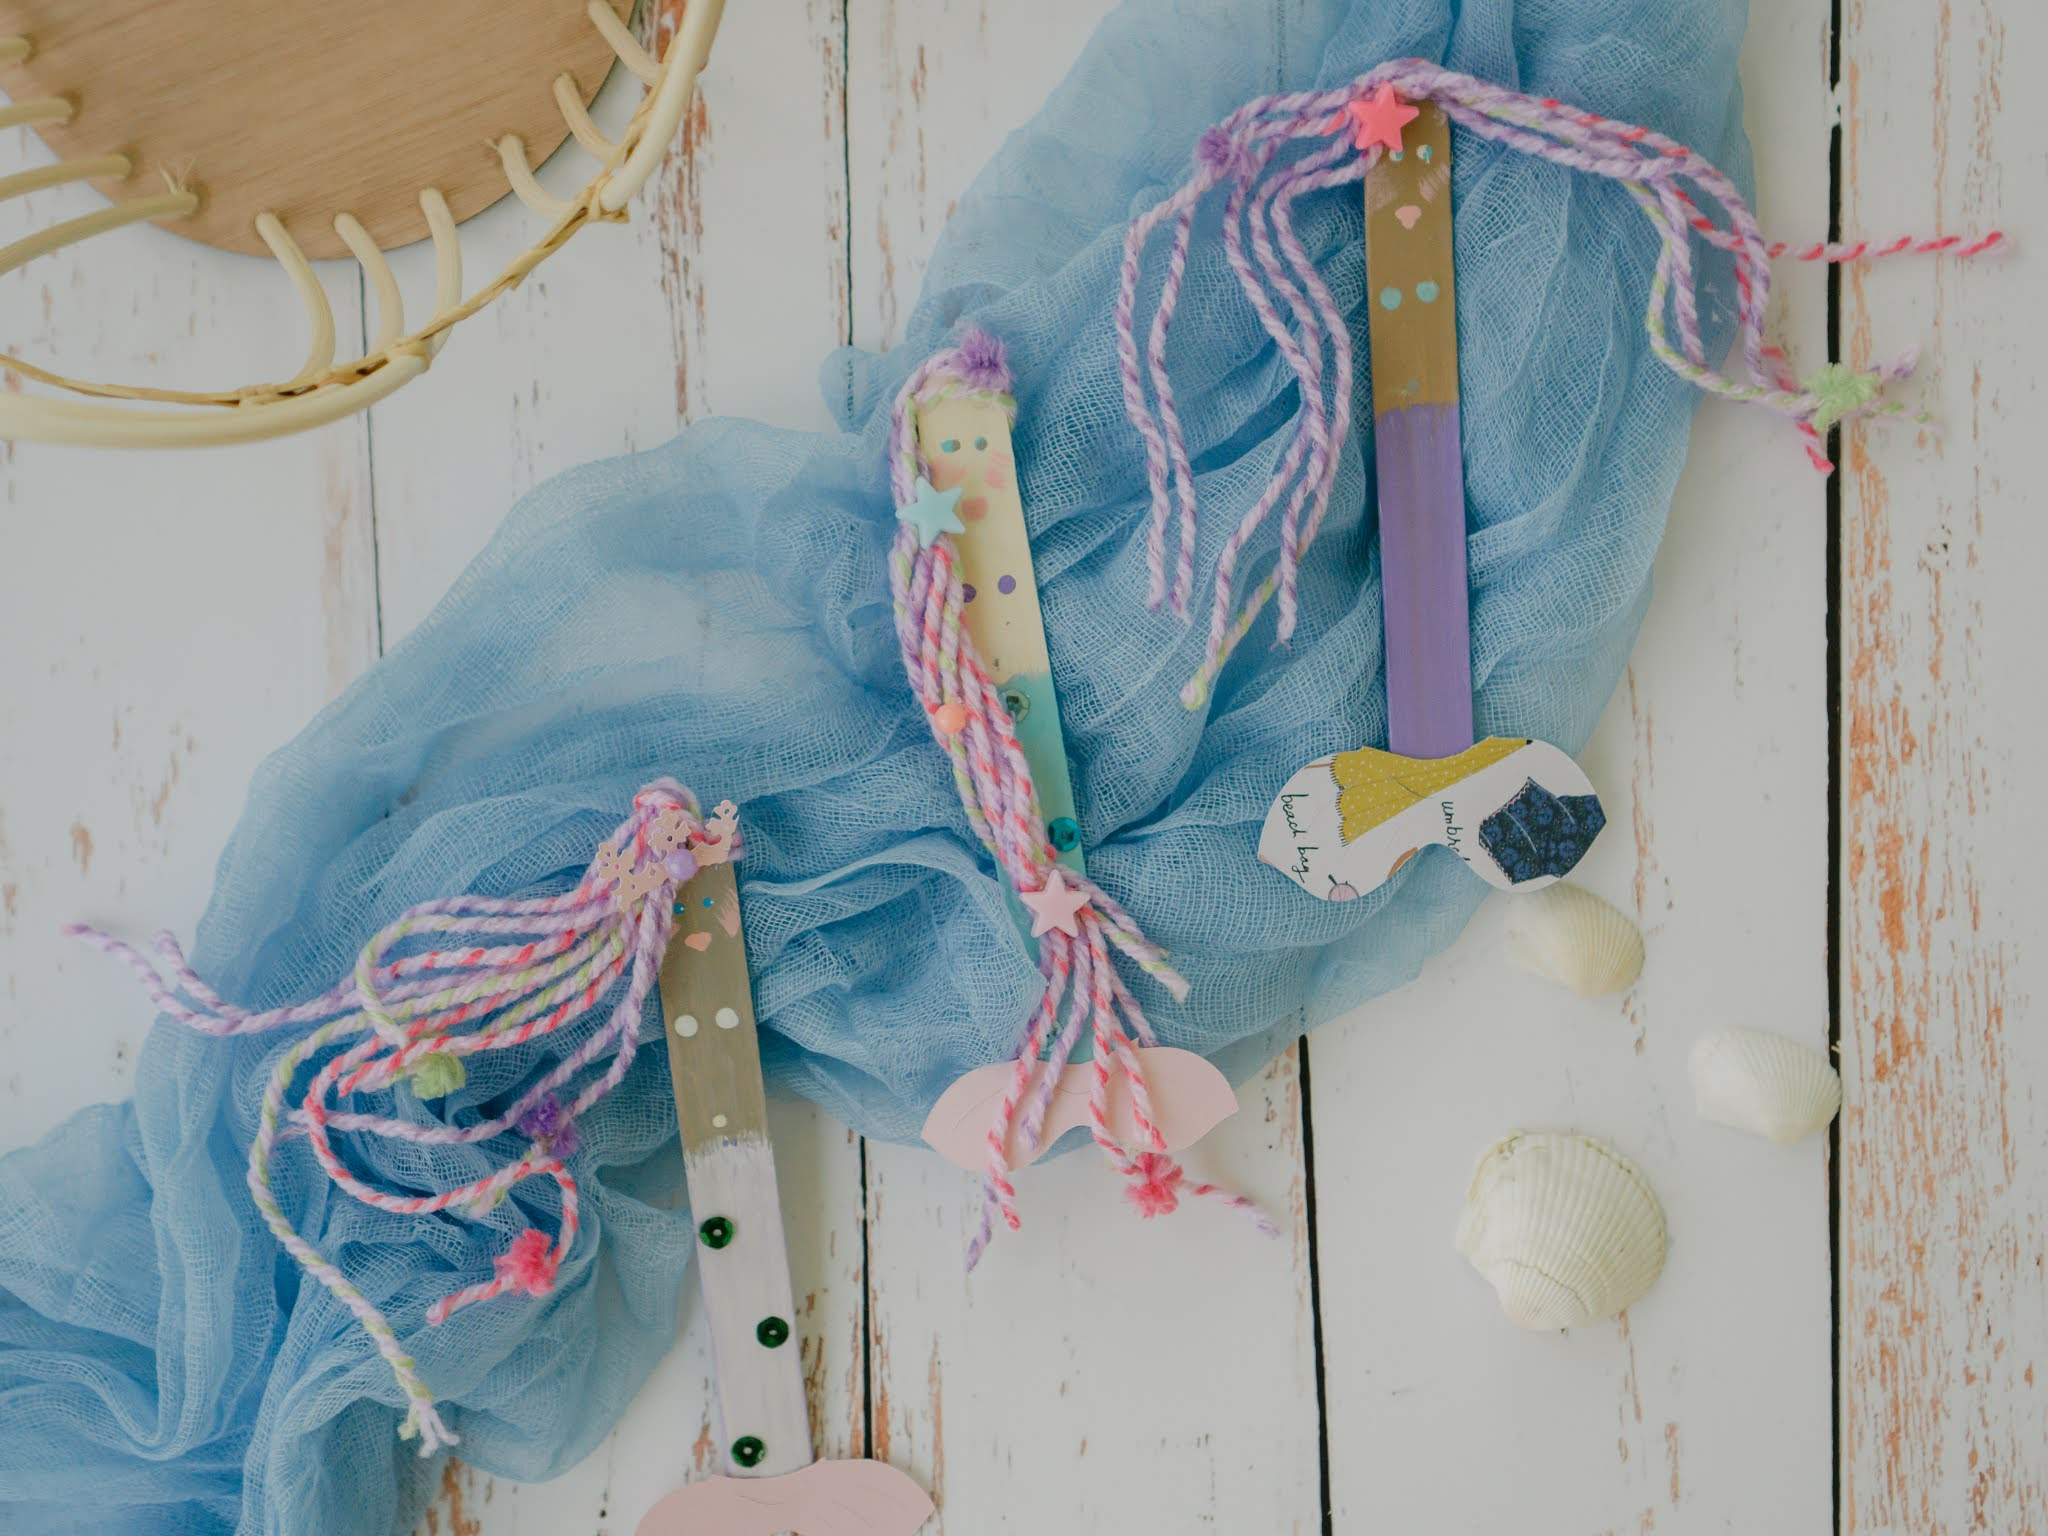 summertime crafts with popsicle sticks